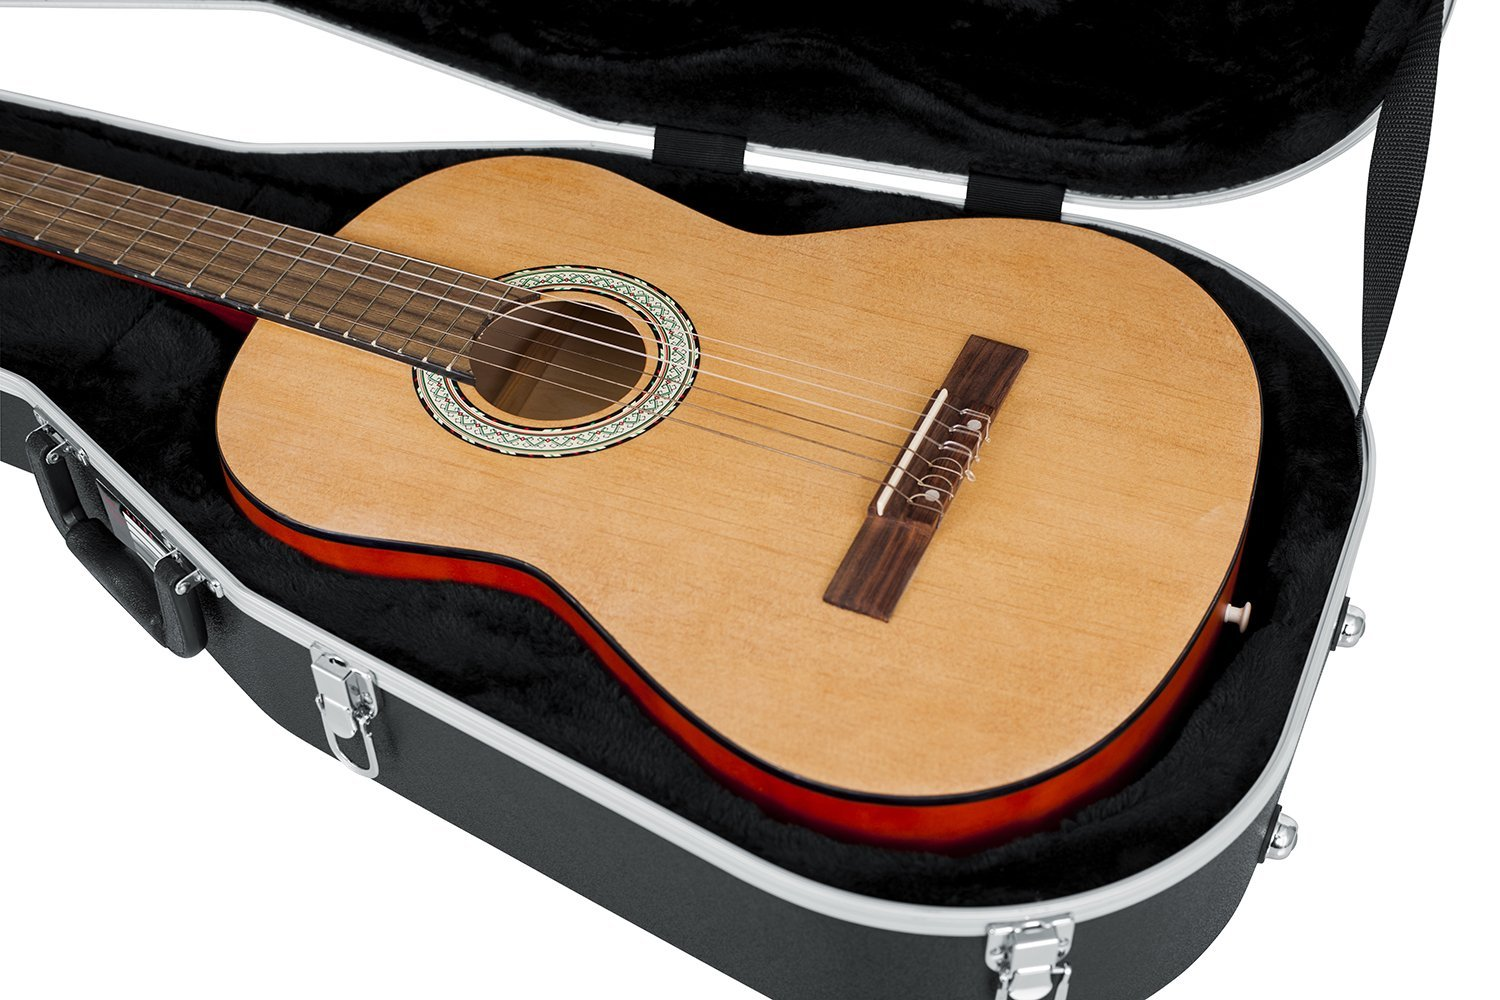 Gator Cases Deluxe ABS Classical Guitar Case (Plastic) by Gator (Image #4)